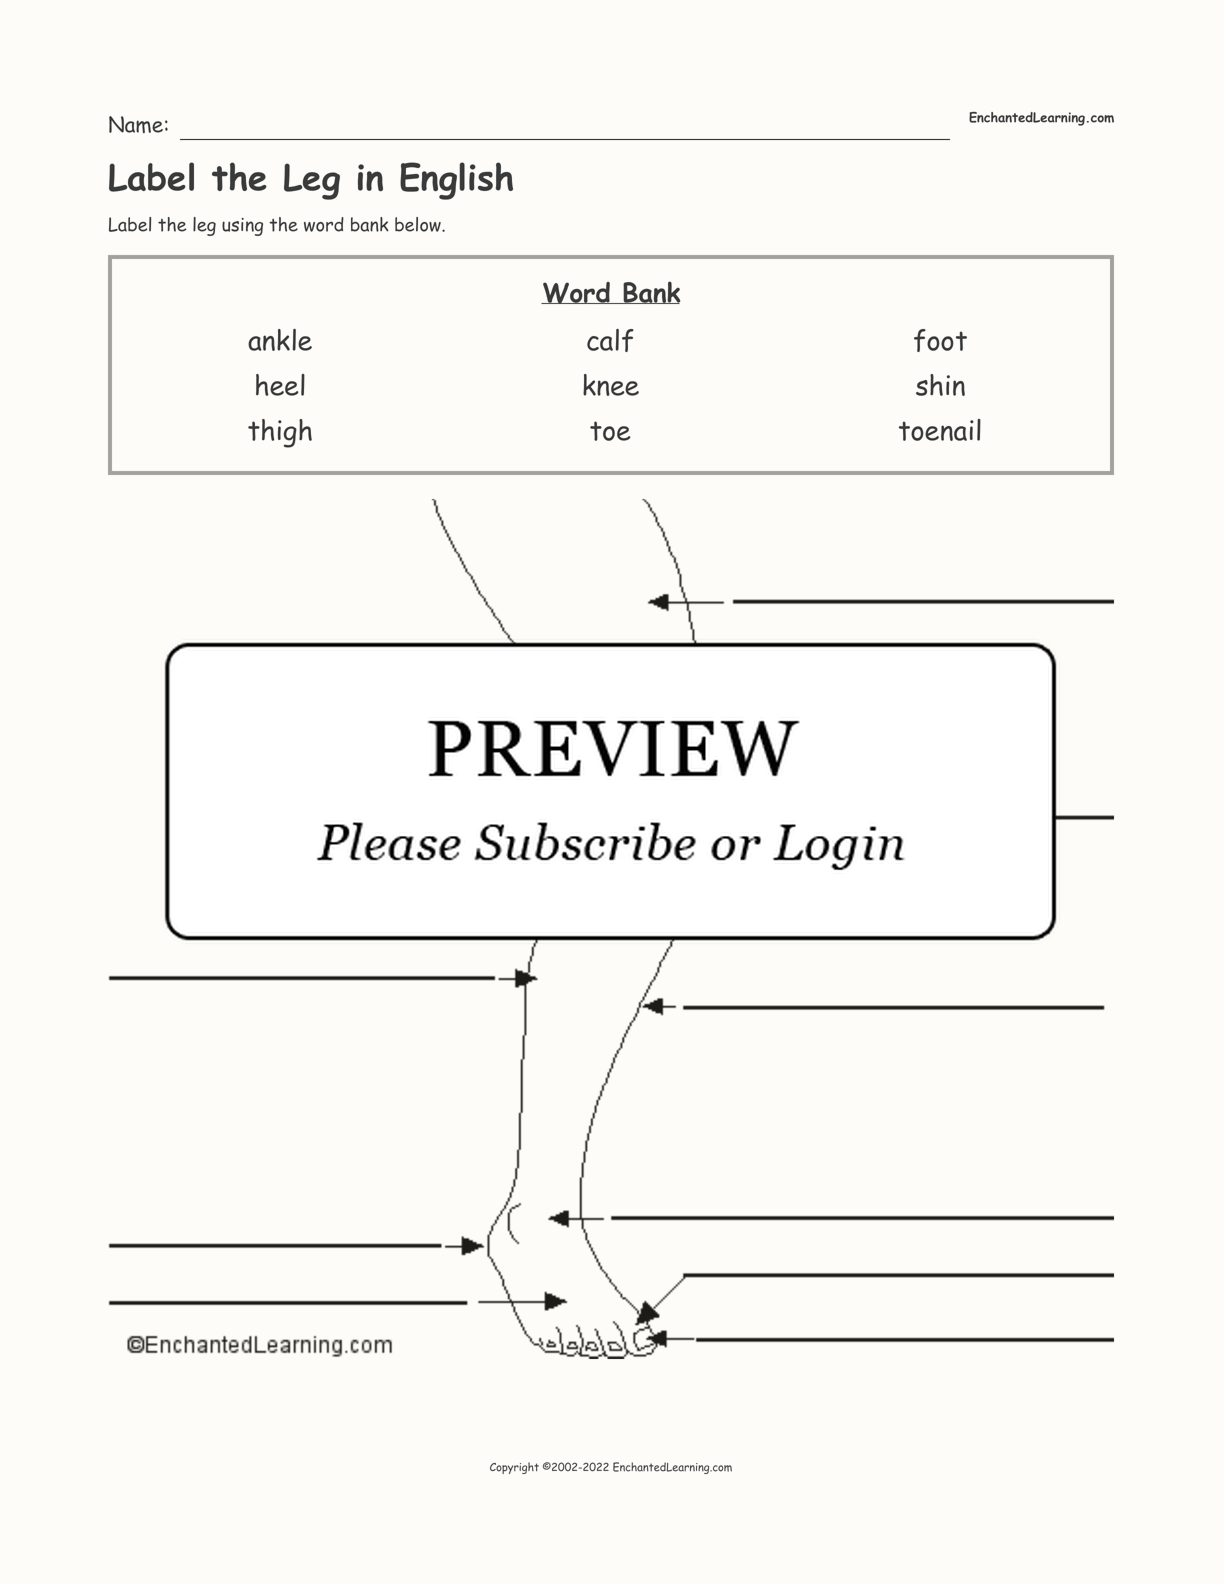 Label the Leg in English interactive worksheet page 1